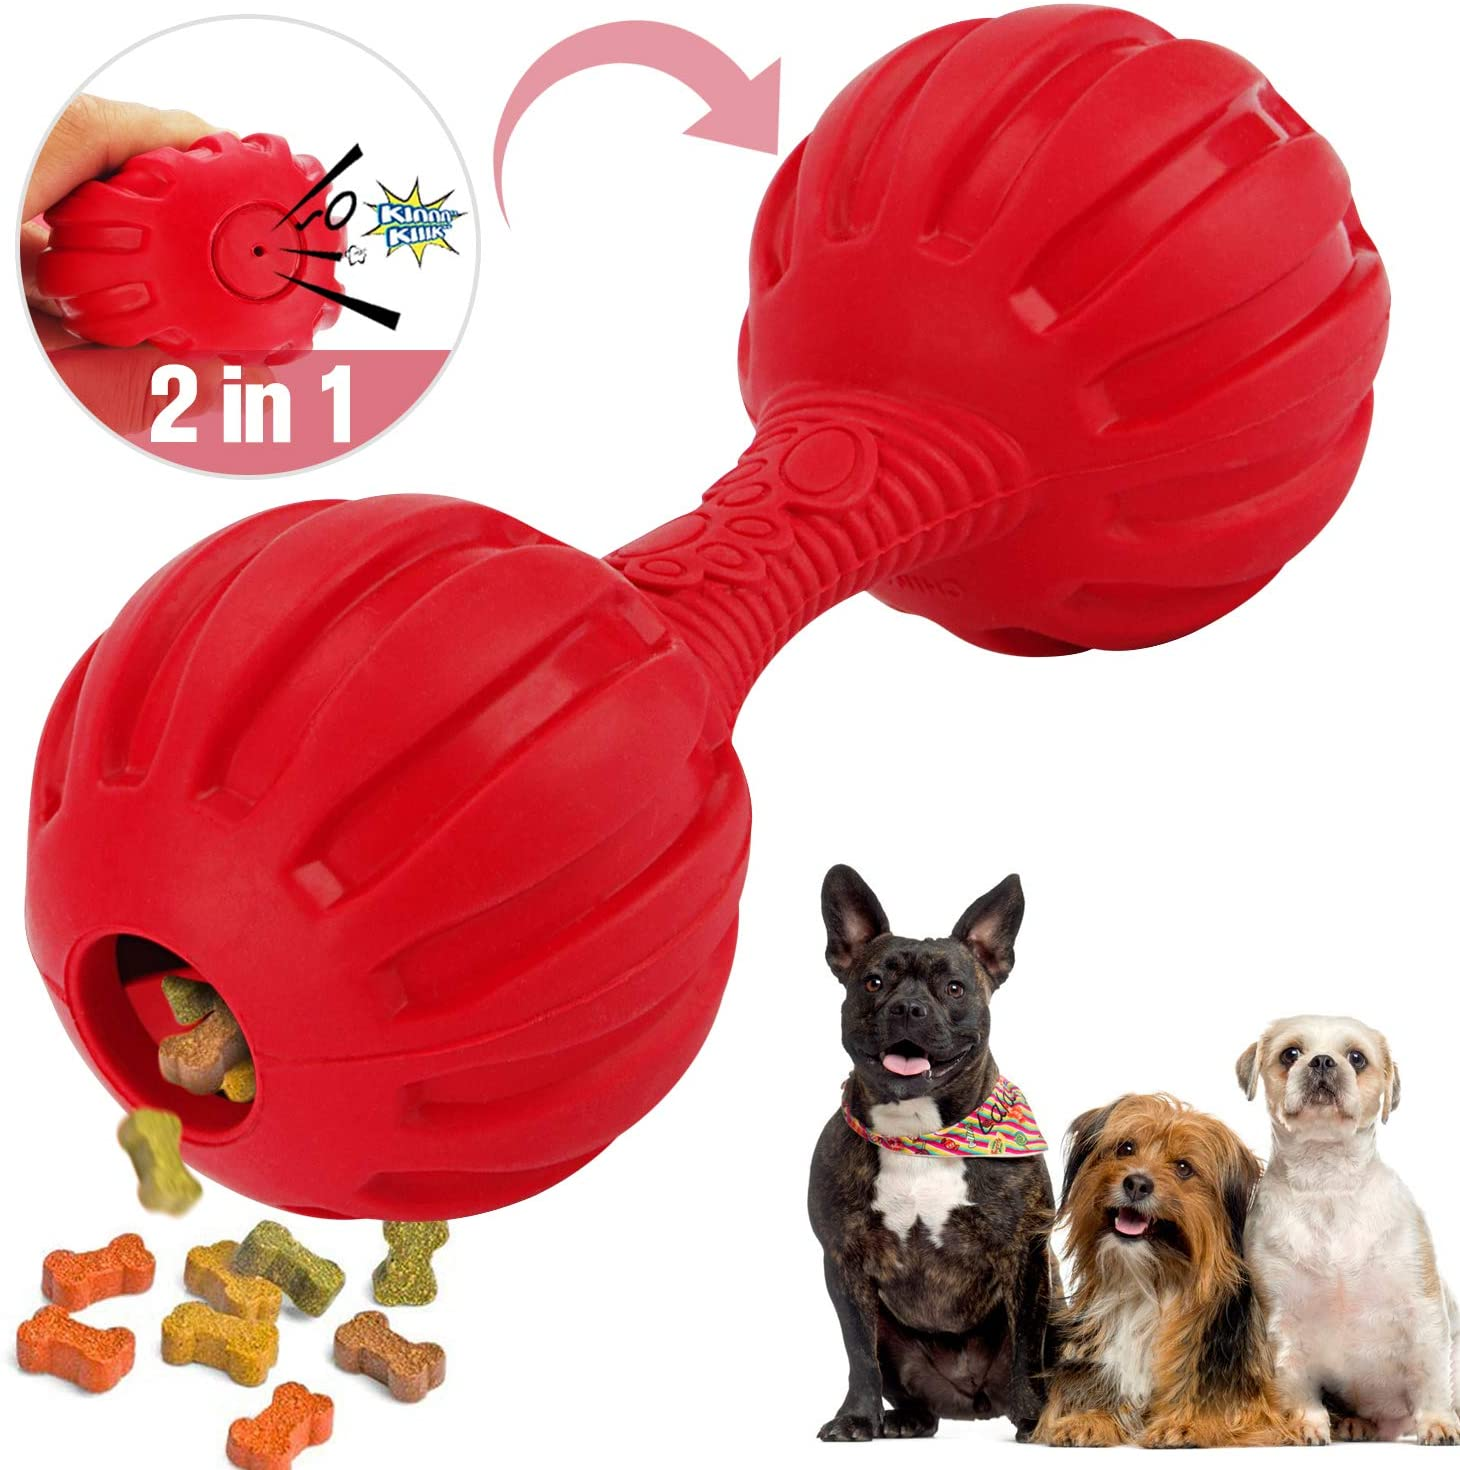 VANFINE 2 in 1 Dog Squeaky Toys - Dog Ball Toys- Food Dispensing Dog Toy IQ Training Teeth Cleaning Playing -Dog Toys for Boredom - Dog Treat Bal